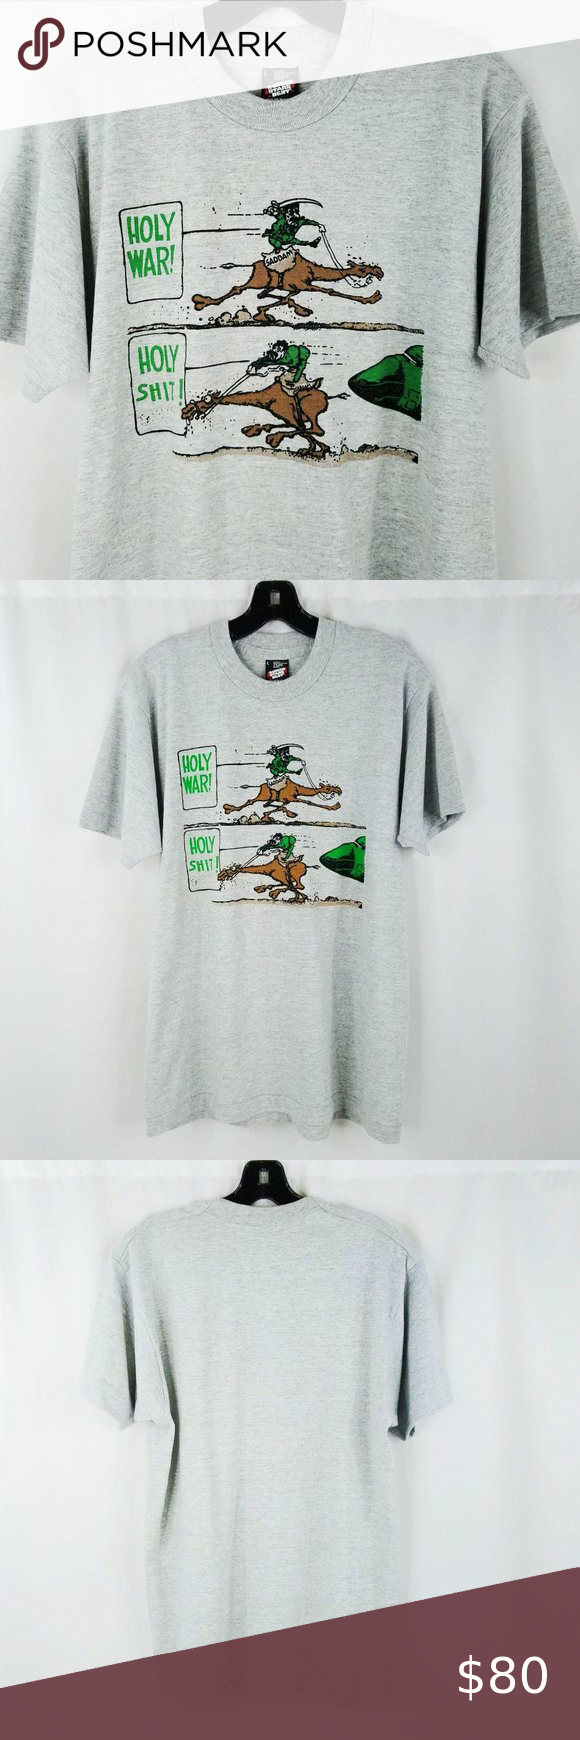 Vintage 90's Holy War Saddam TShirt Mens L Vintage 90's Holy War Saddam TShirt Mens L Gulf War Desert Storm Hussein Satire  Vintage item. Please see measurements in description to help determine sizing. Excellent pre-owned condition. Please see all photos.  - Mens Size: Large - Material: 50% Cotton / 50% Polyester - Color: Gray - Armpit to armpit: 20.75